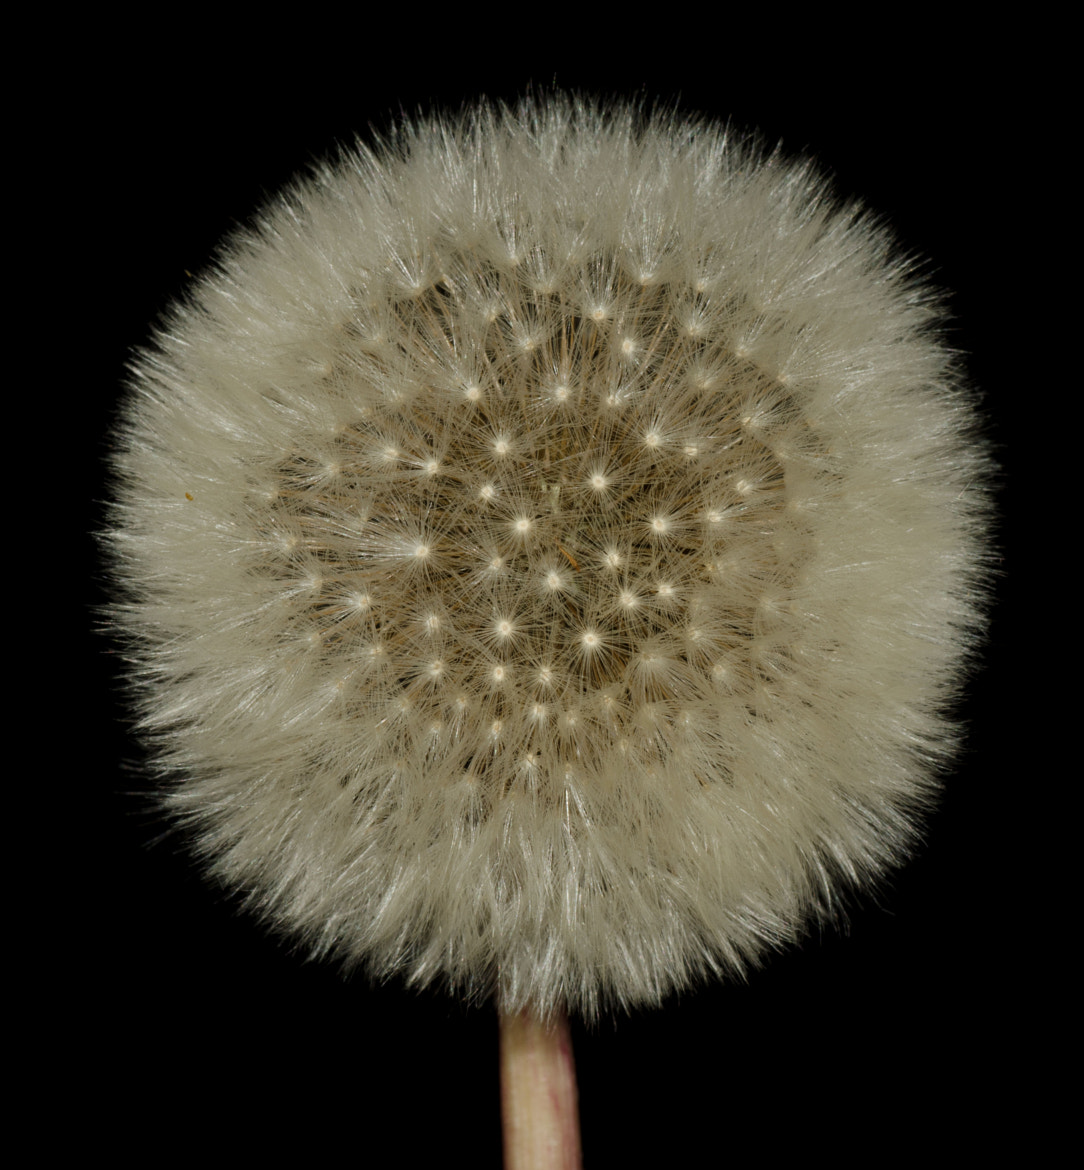 Photograph Dandelion by Richard Hawley on 500px